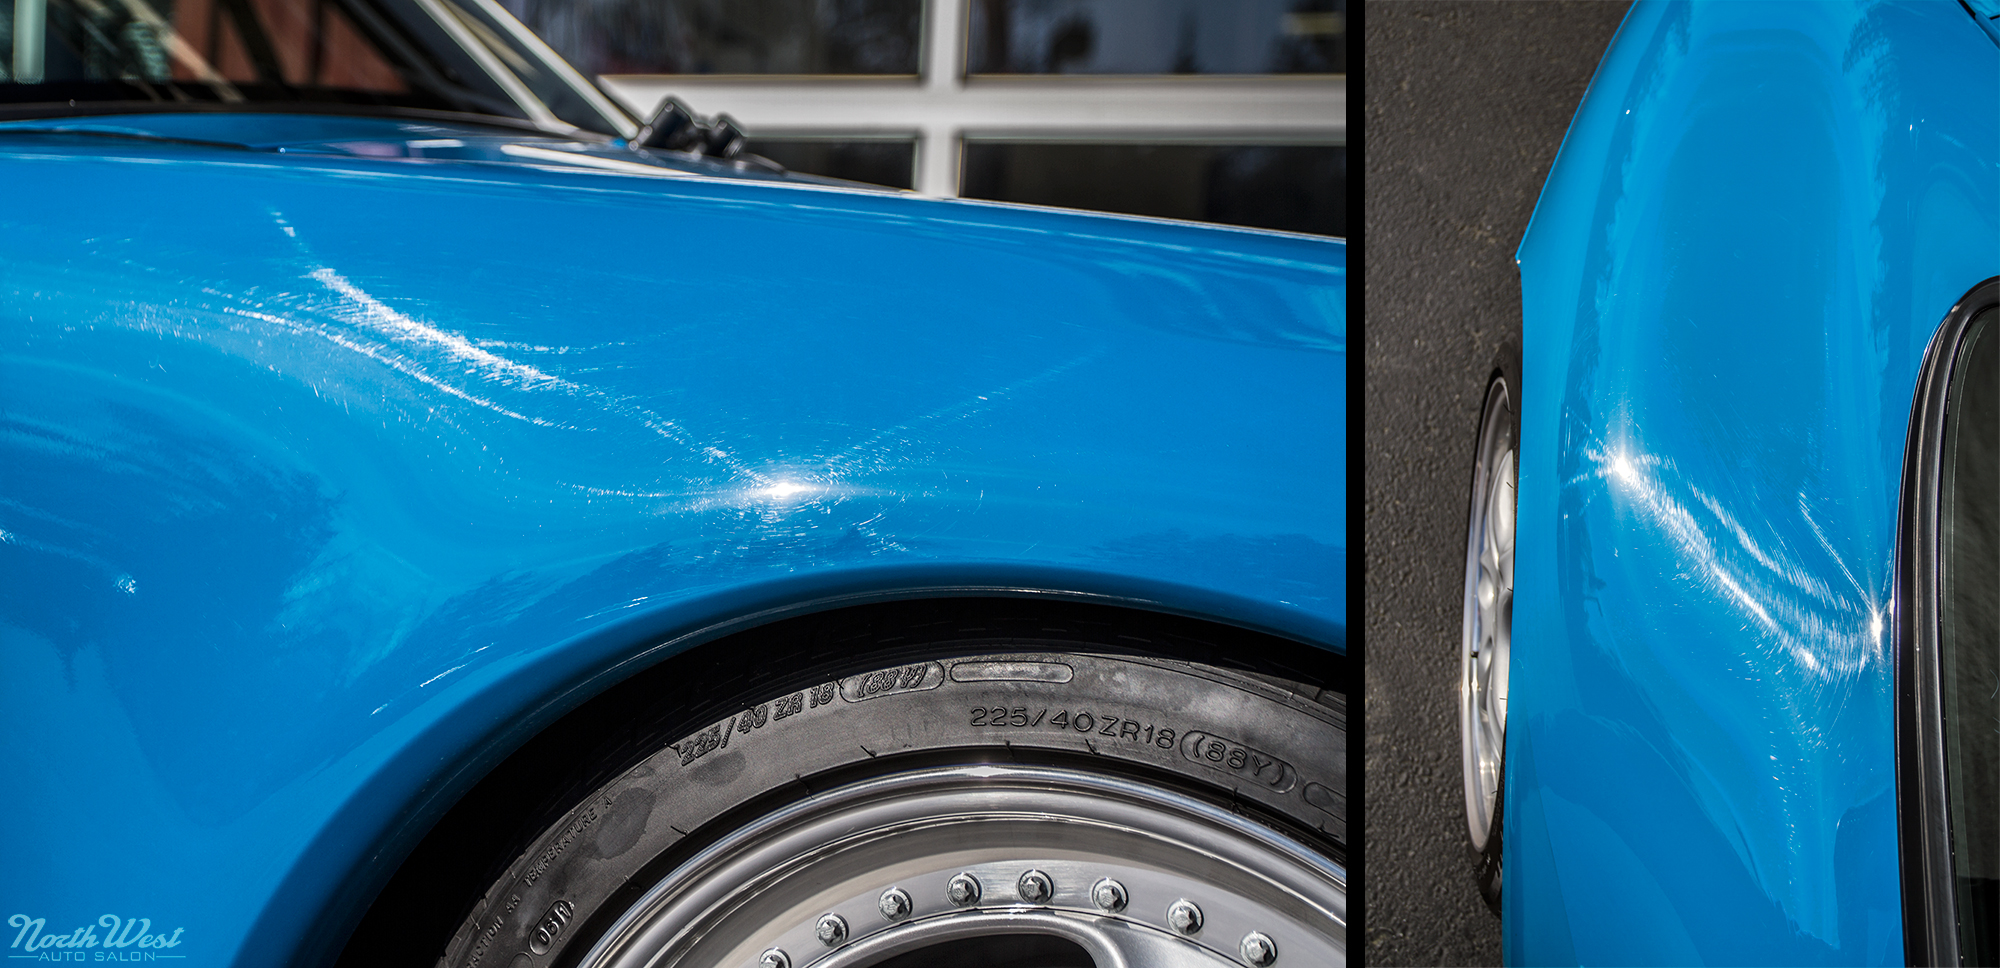 NWAS fanatic detail paint correction rare Blue Turquoise 993 Fanatic Detail